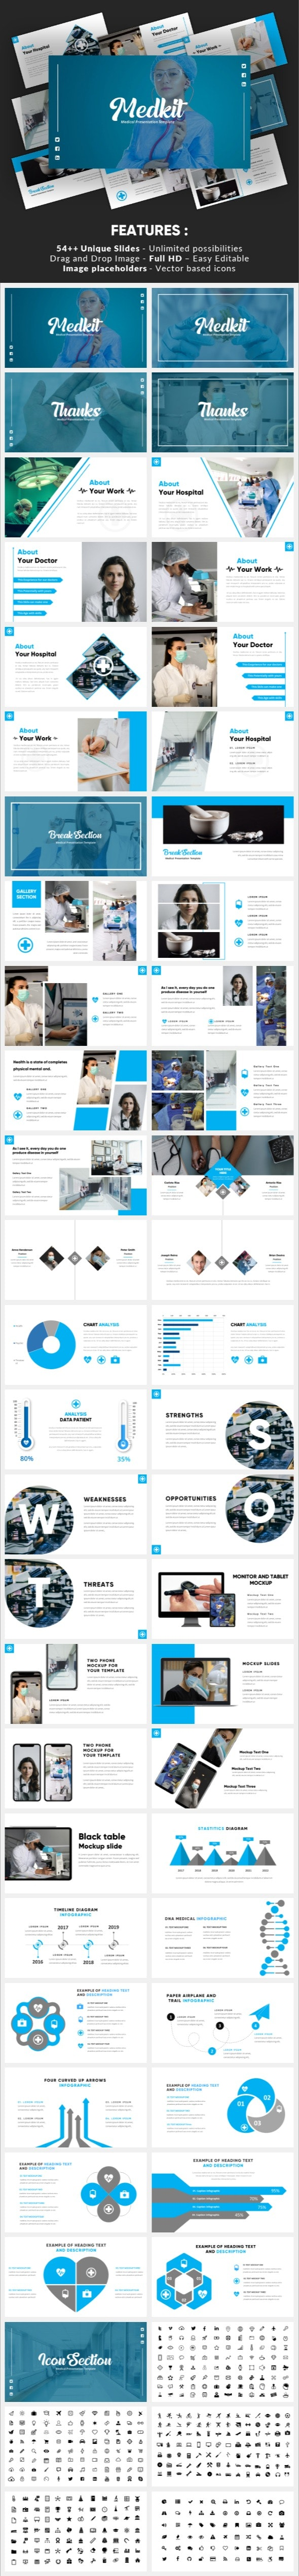 Medkit - Medical Treatment Powerpoint Template - Miscellaneous PowerPoint Templates